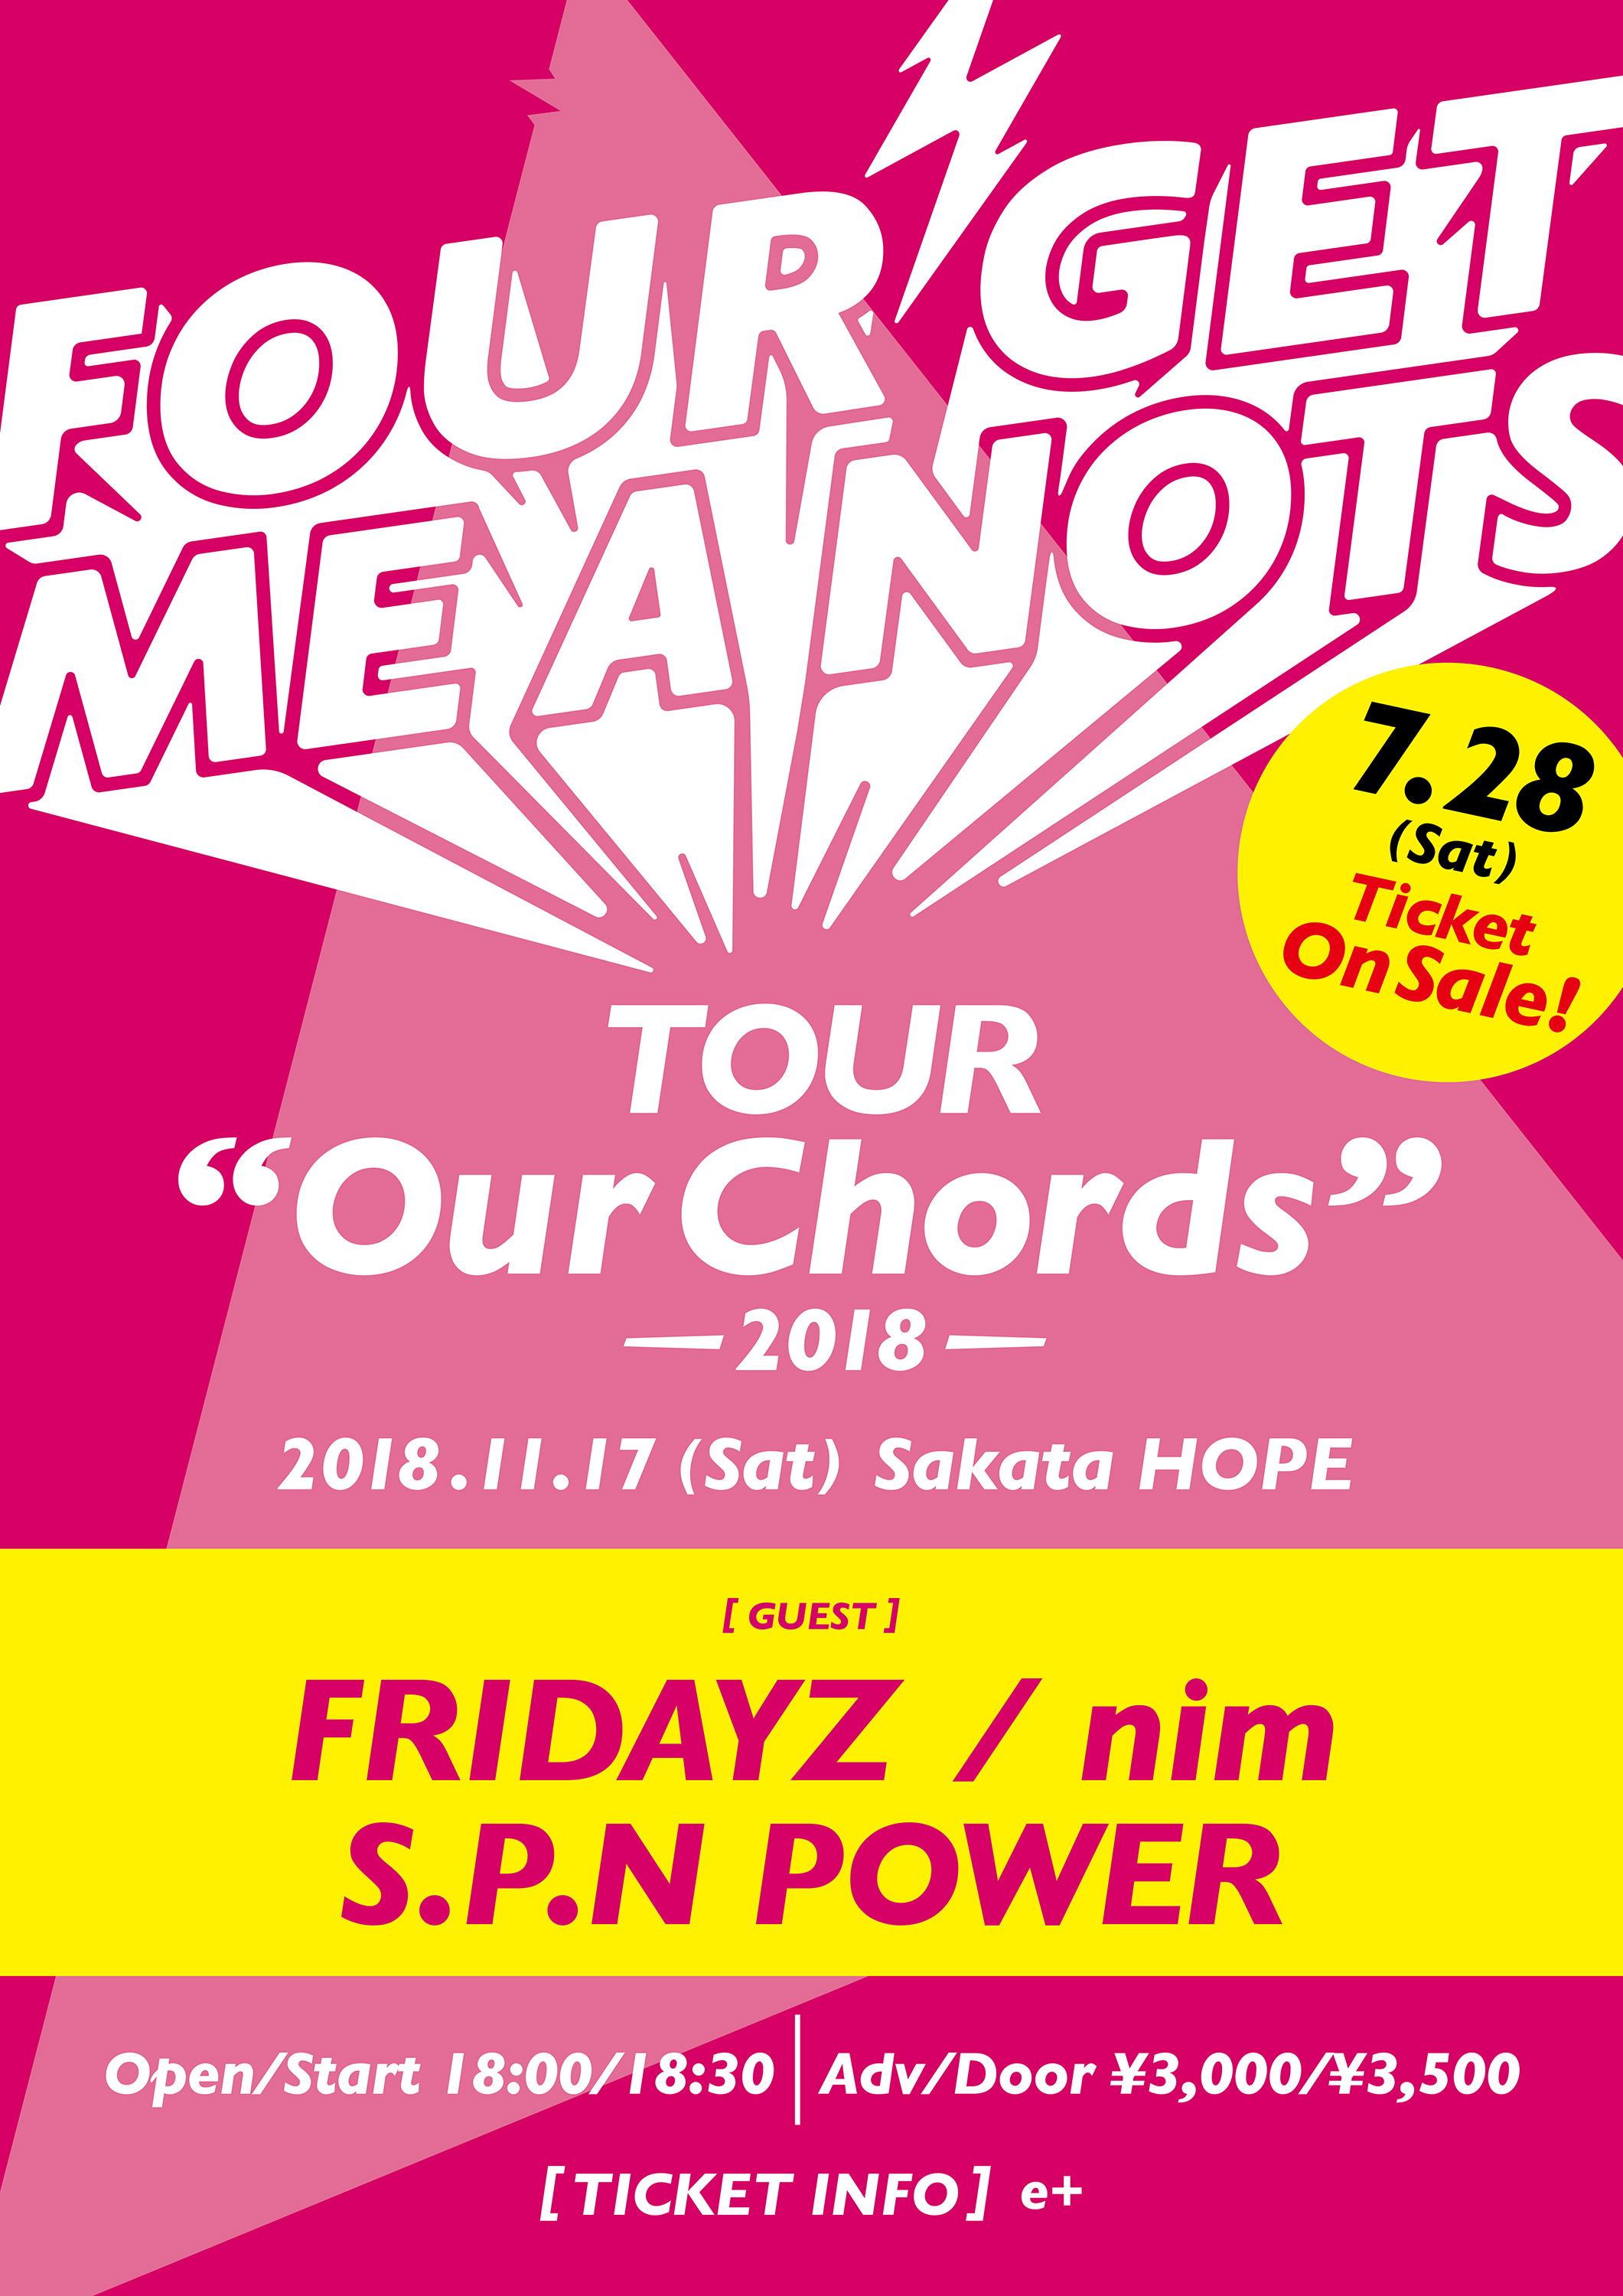 four get me a nots tour our chords 2018 2018 11 17 酒田hope